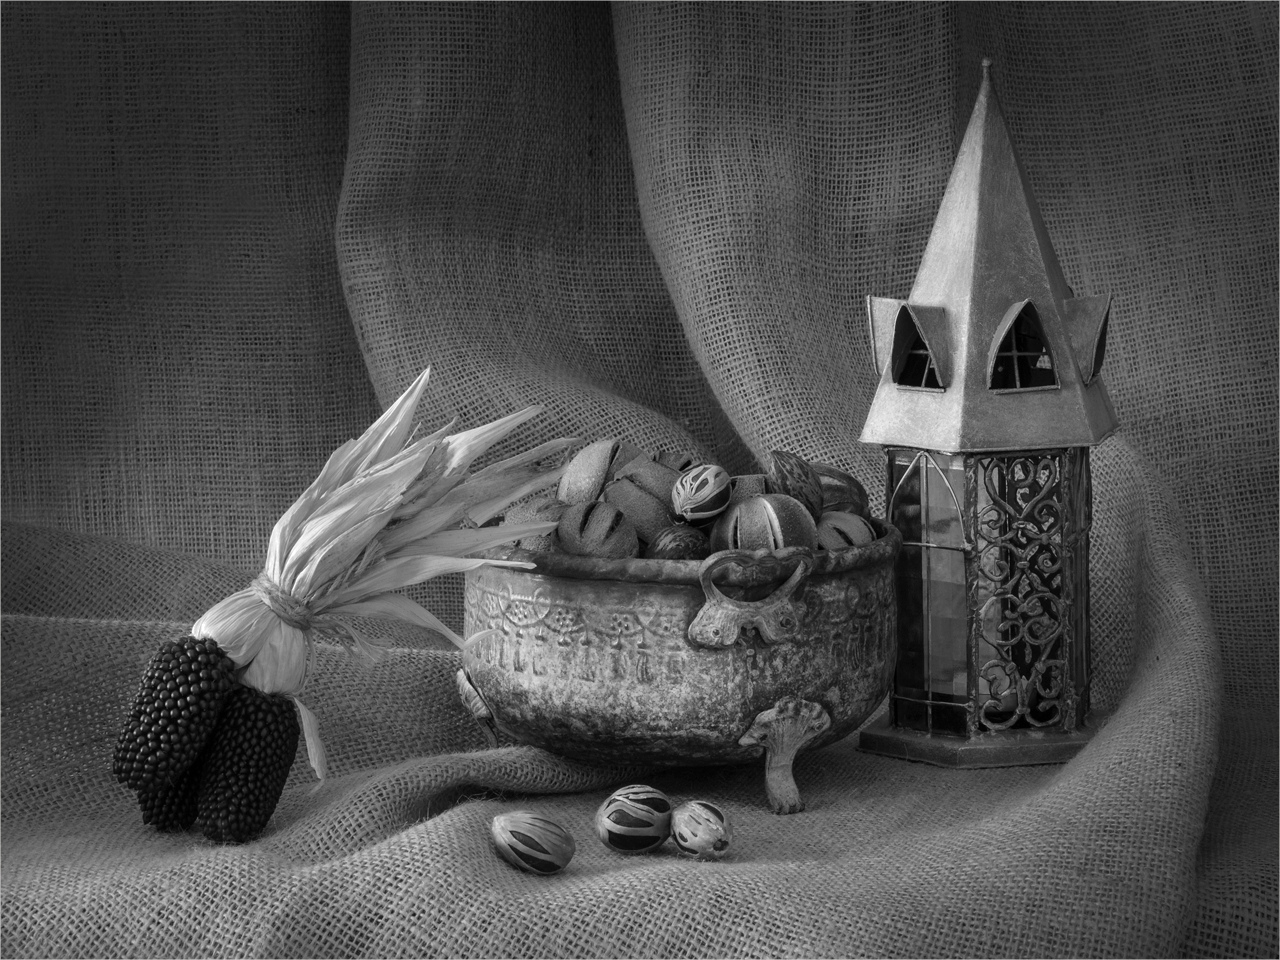 Honorable Mention - Metal Bowl and Lantern - Peggy  BoikeSCVCC - St. Croix Valley Camera Club